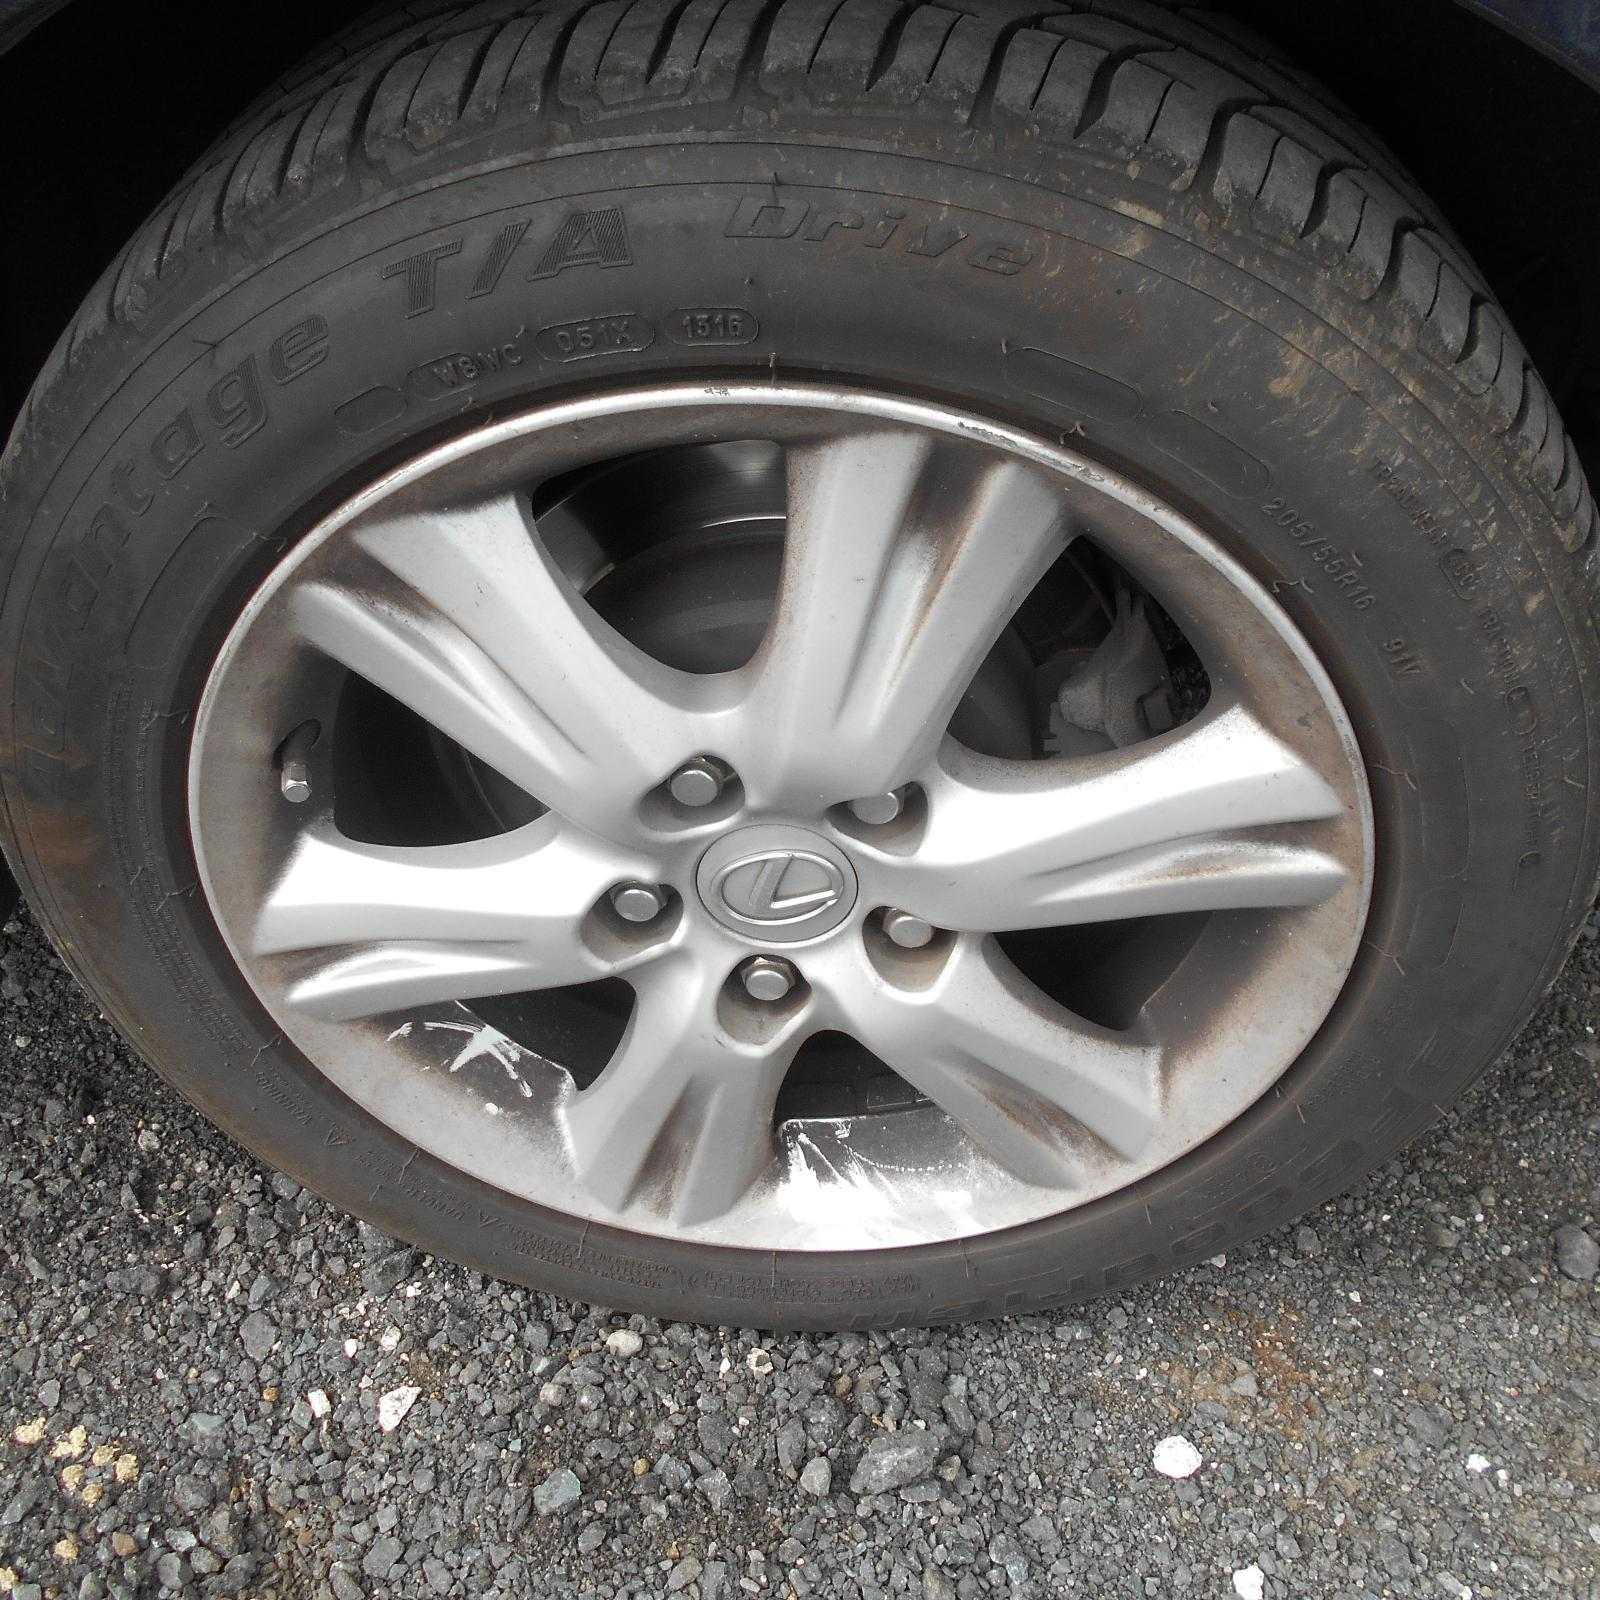 LEXUS IS250/IS250C, Wheel Mag, IS250, FACTORY, FRONT/REAR, 16X7IN, GSE20R, 11/05-09/10